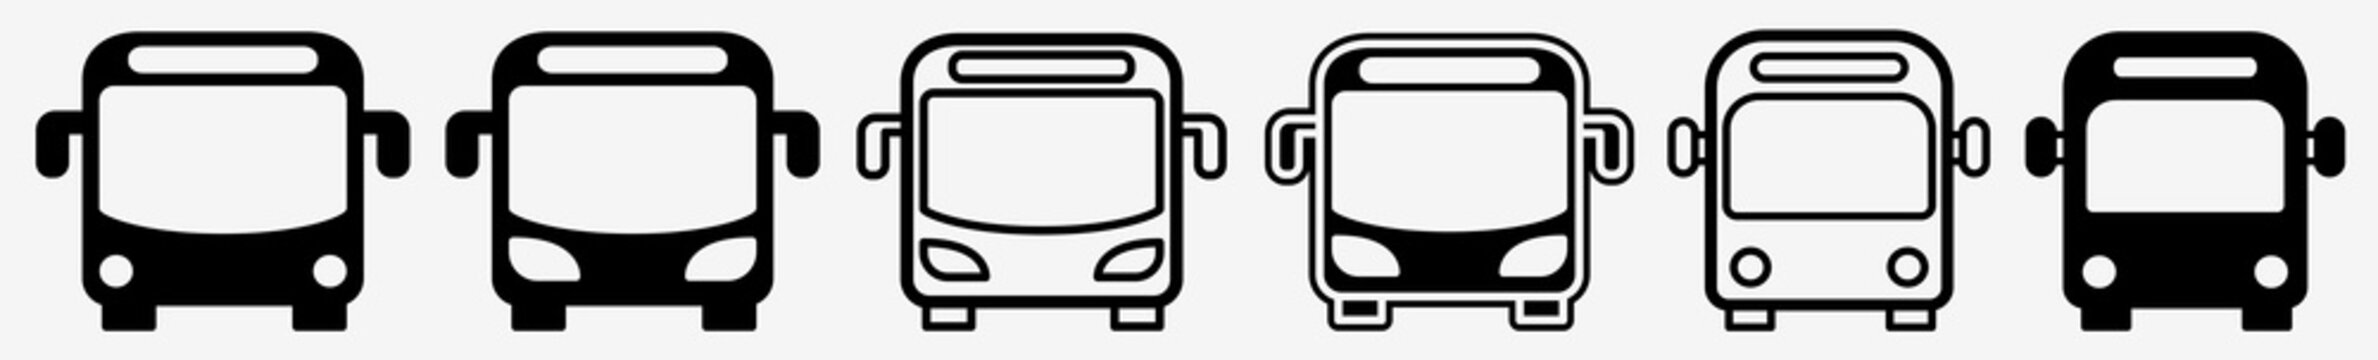 Bus Icon School Bus Sign Set | Busses Icon Shuttle Vector Illustration Logo | Transit Bus Public Bus Icon Isolated Collection